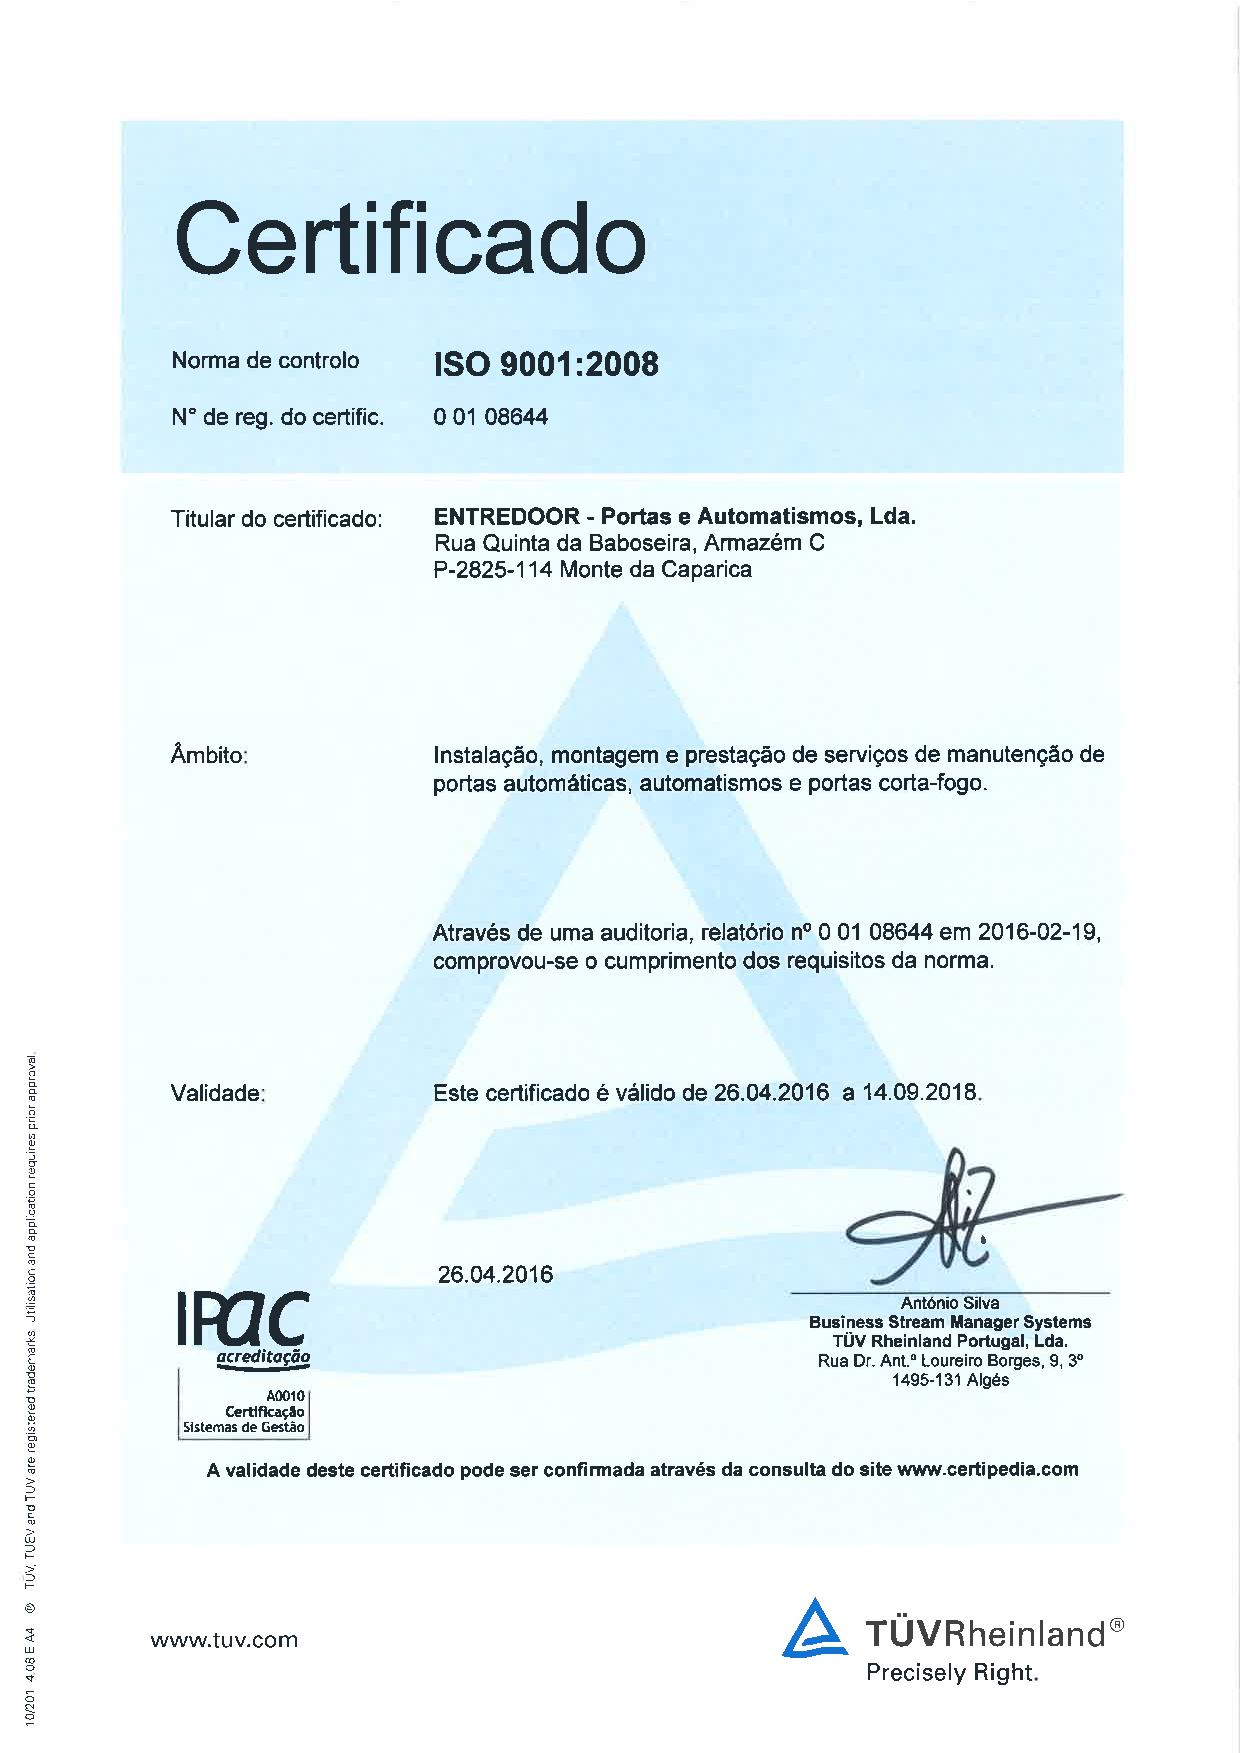 CertifcadoISO9001_PT-page-001.jpg